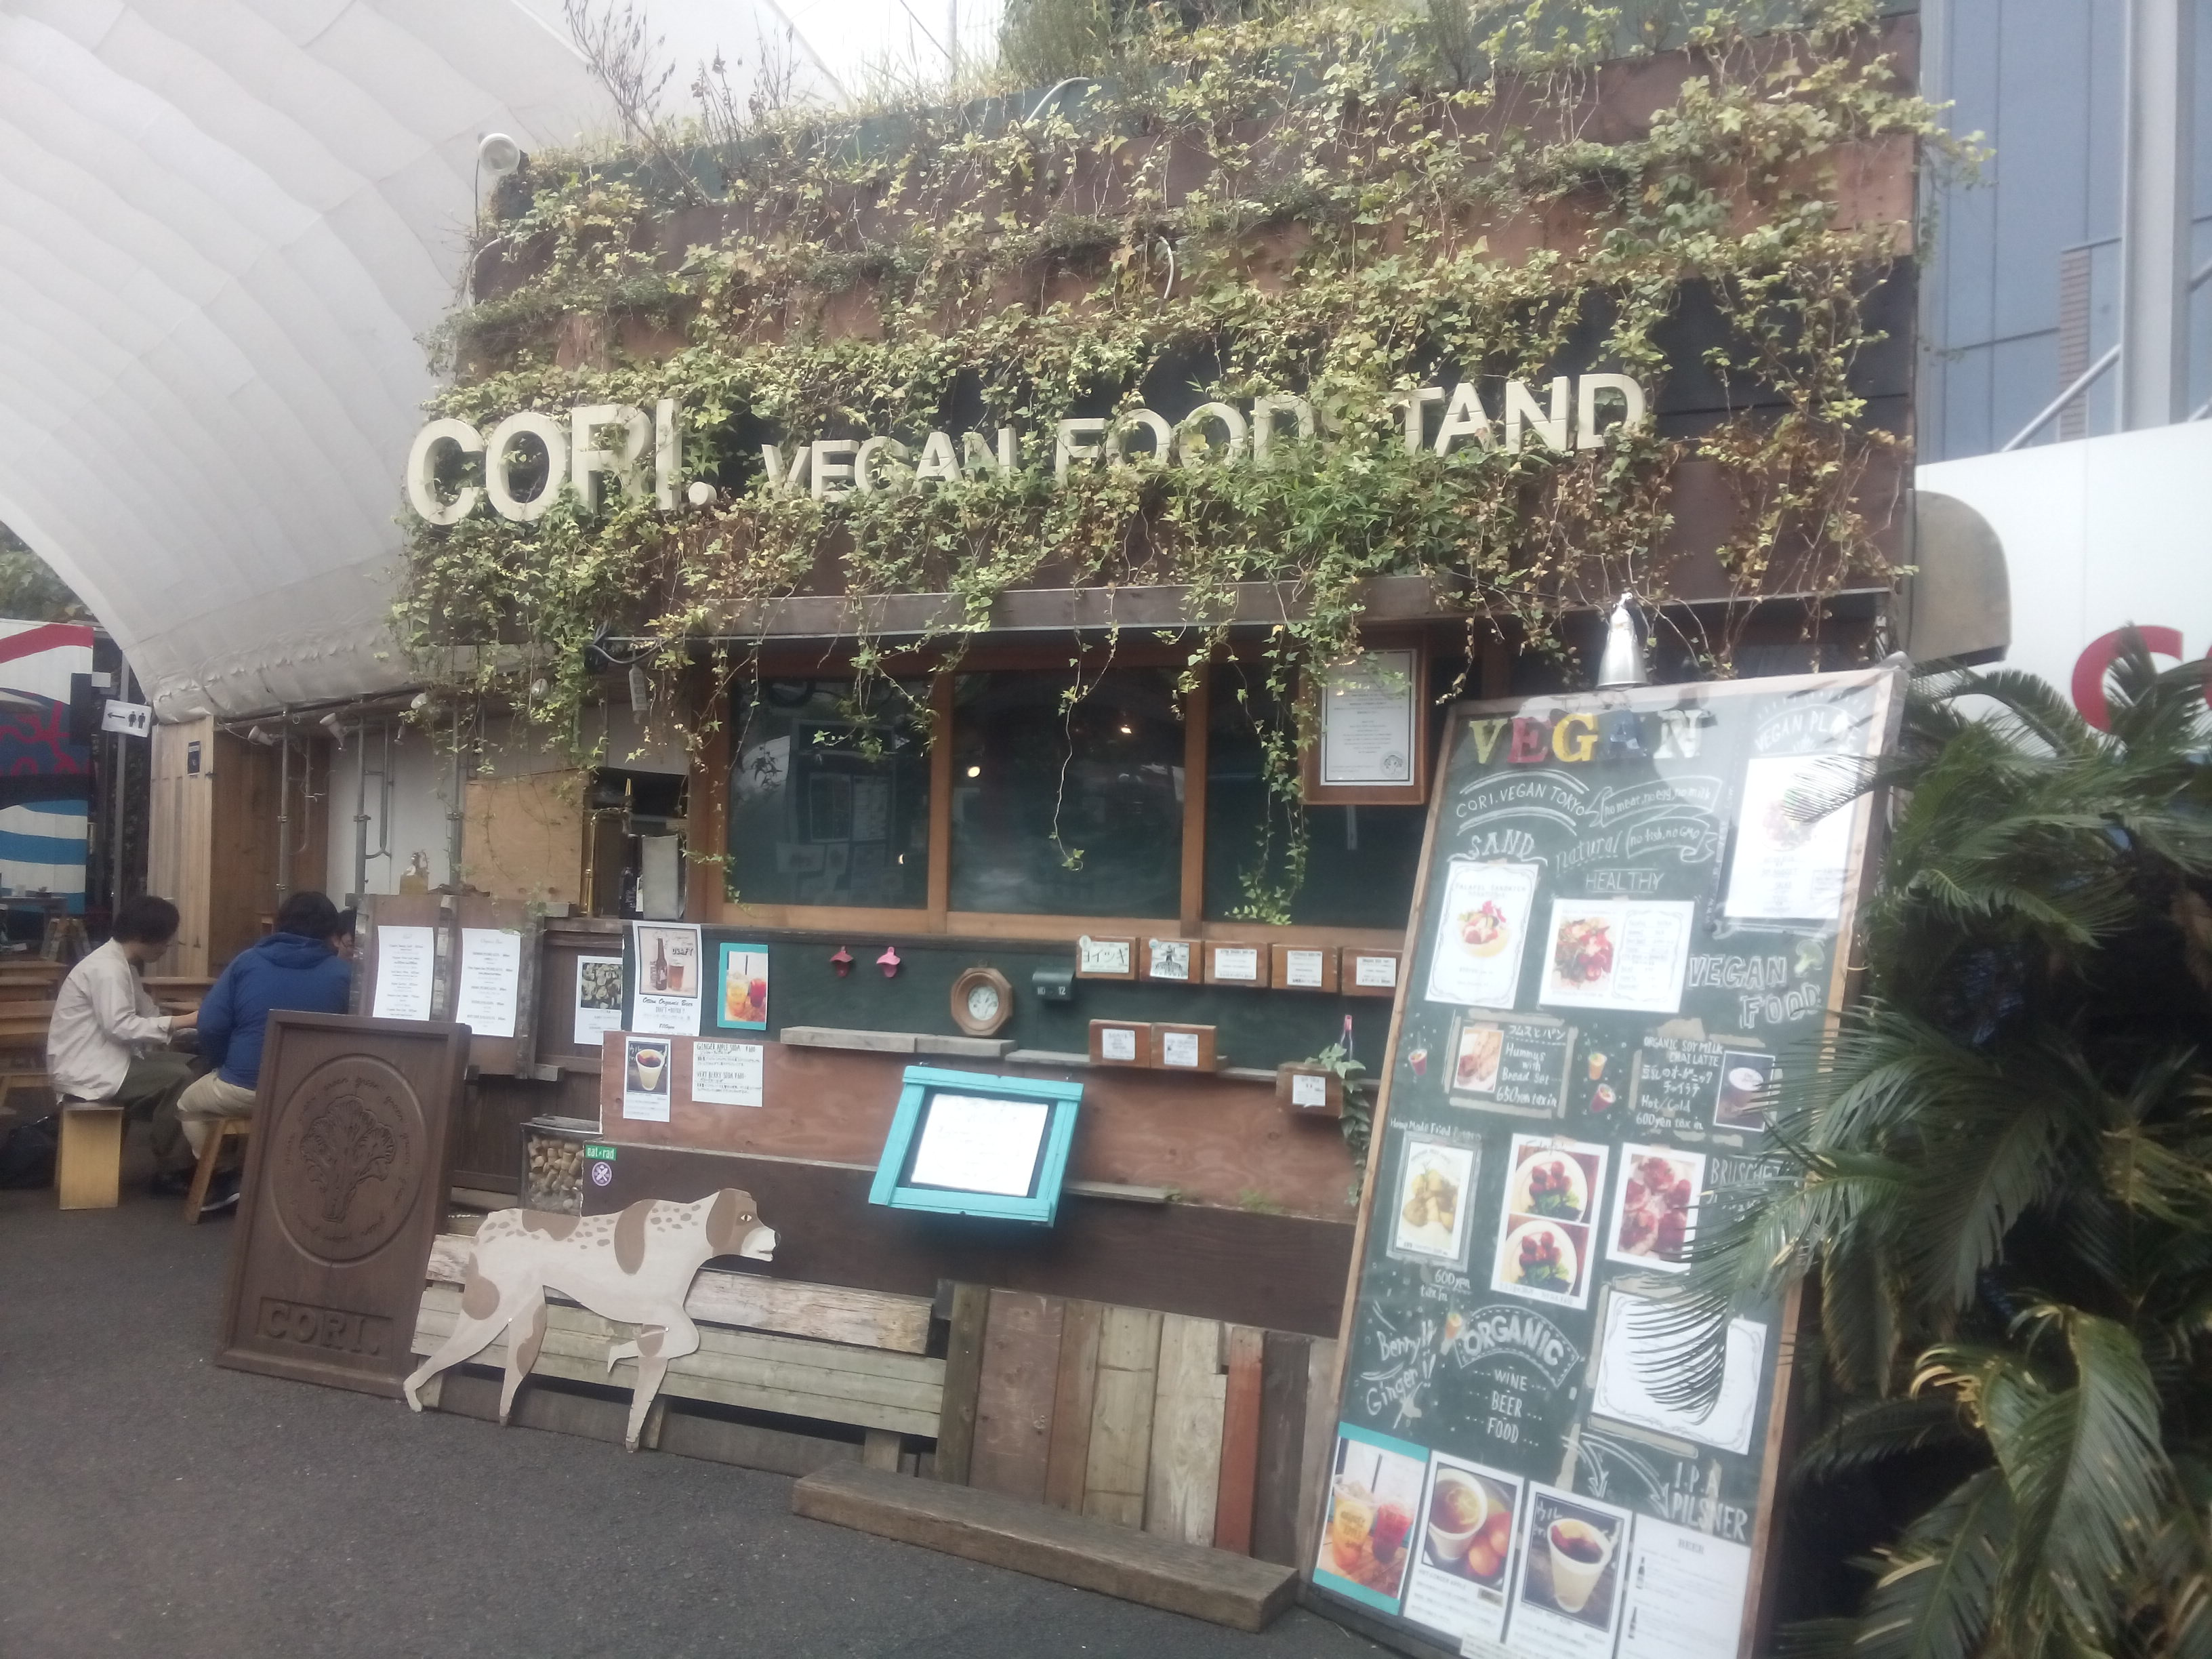 Cori vegan food stand